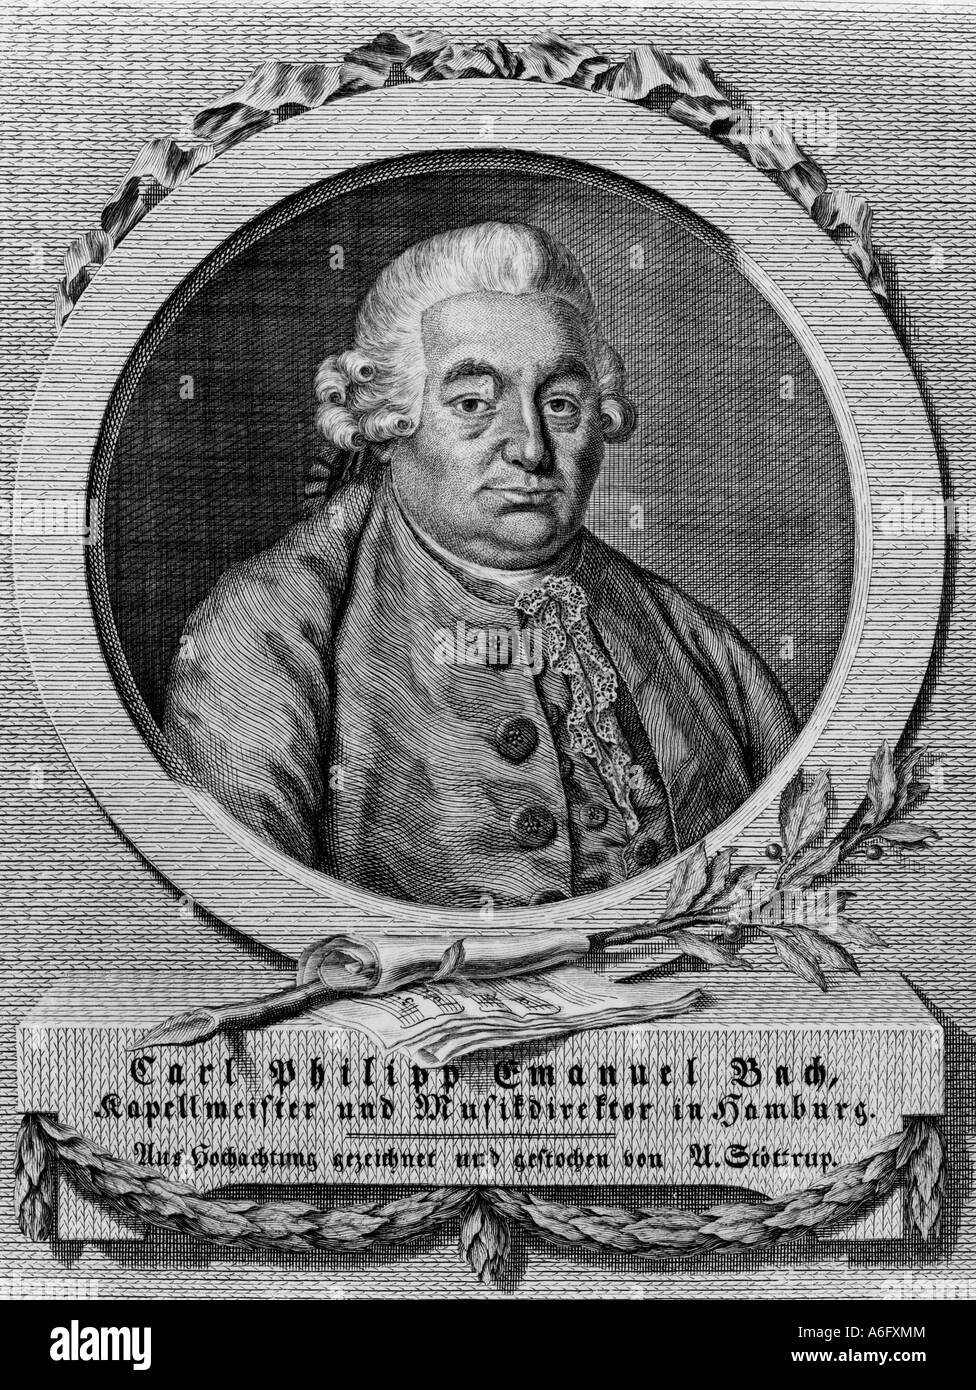 CARL PHILIPP EMANUEL BACH German composer 1714 to 1788 - Stock Image